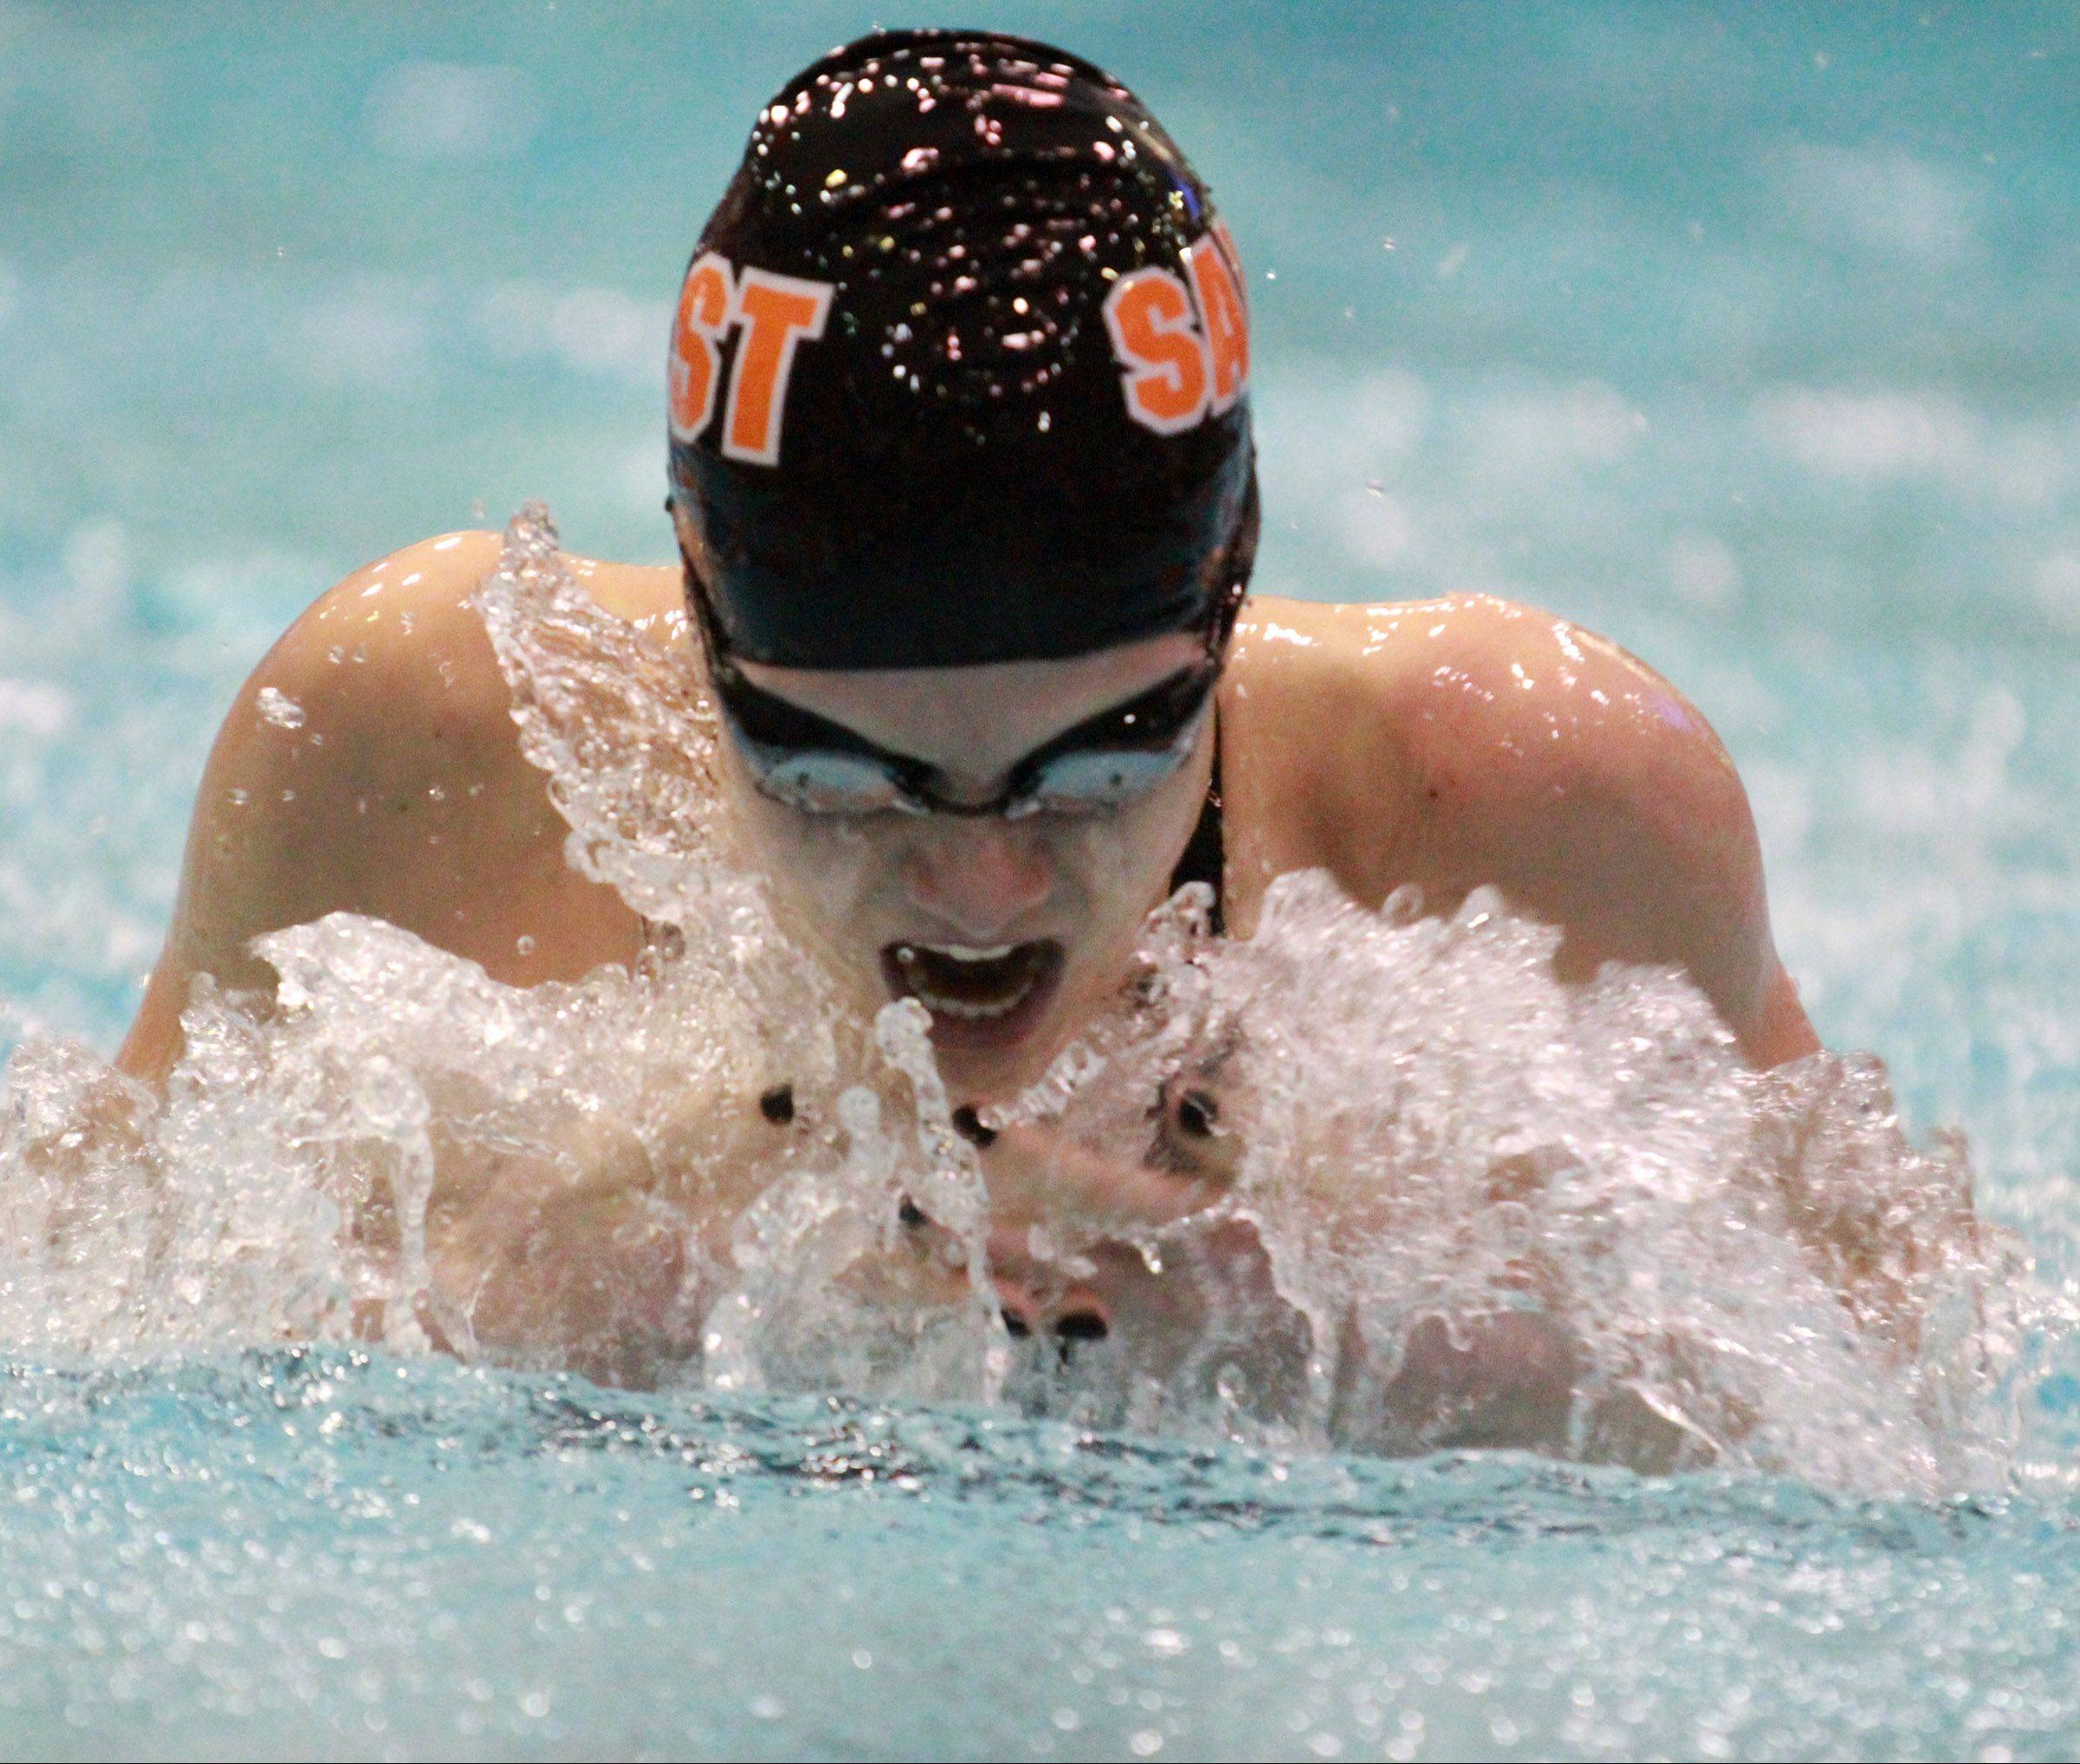 St. Charles East's Shea Hoyt swims the 100-yard breaststroke at the state preliminaries in Evanston on Friday.